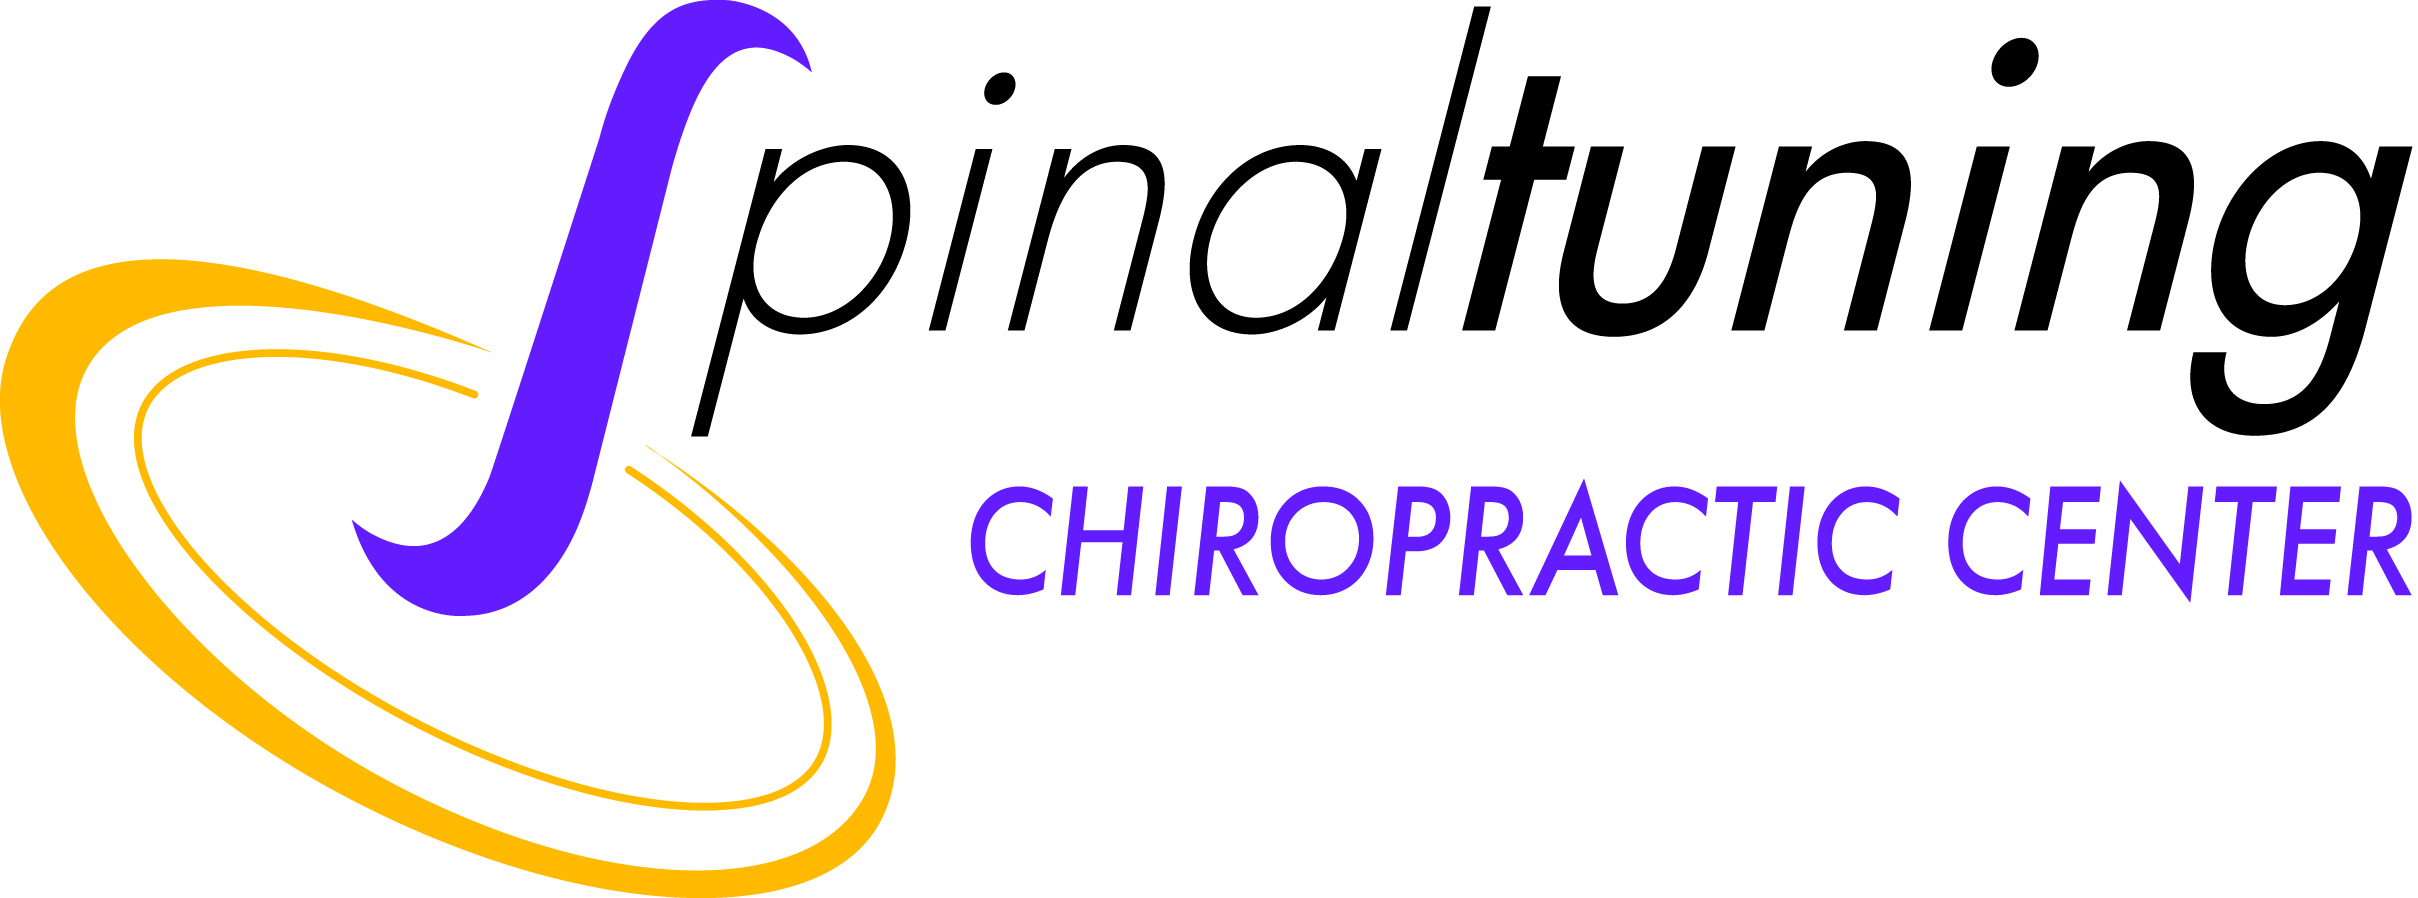 The Spinal Tuning Chiropractic Center, 4685 Merle Hay Road, STE 101, Des Moines, IA, 50322, United States